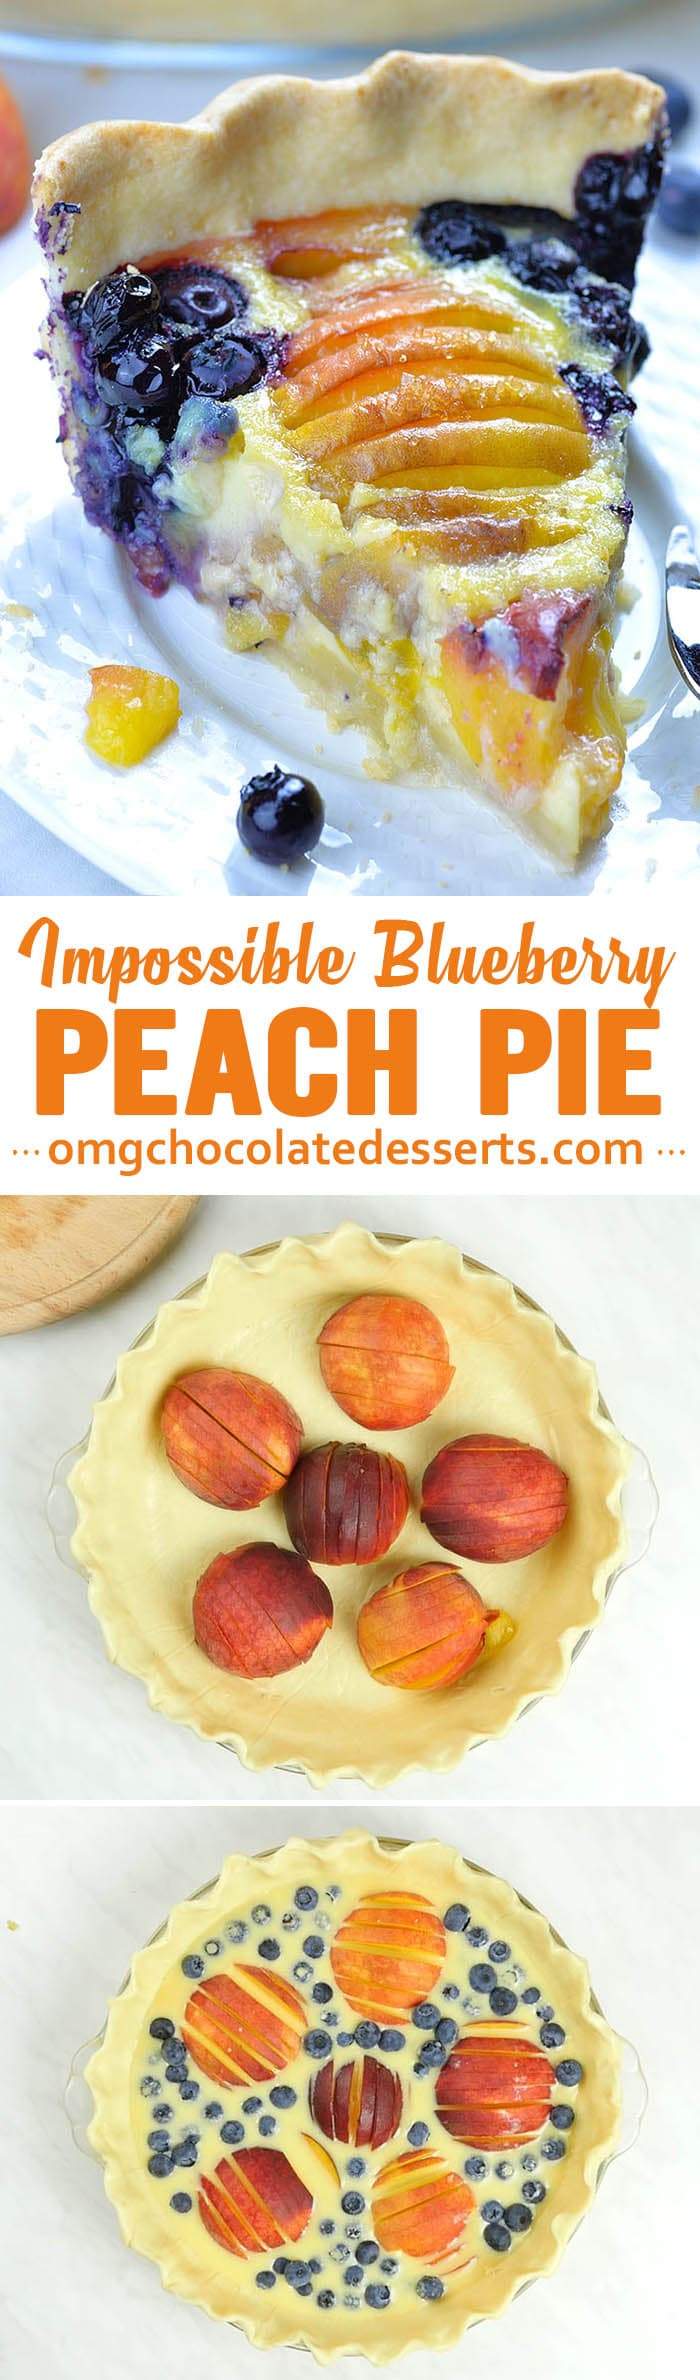 Impossible Peach Blueberry Pie-homemade buttery pie crust filled with creamy vanilla custard, fresh blueberries and sweet and juicy peaches, topped with whipped cream is perfect summer treat.